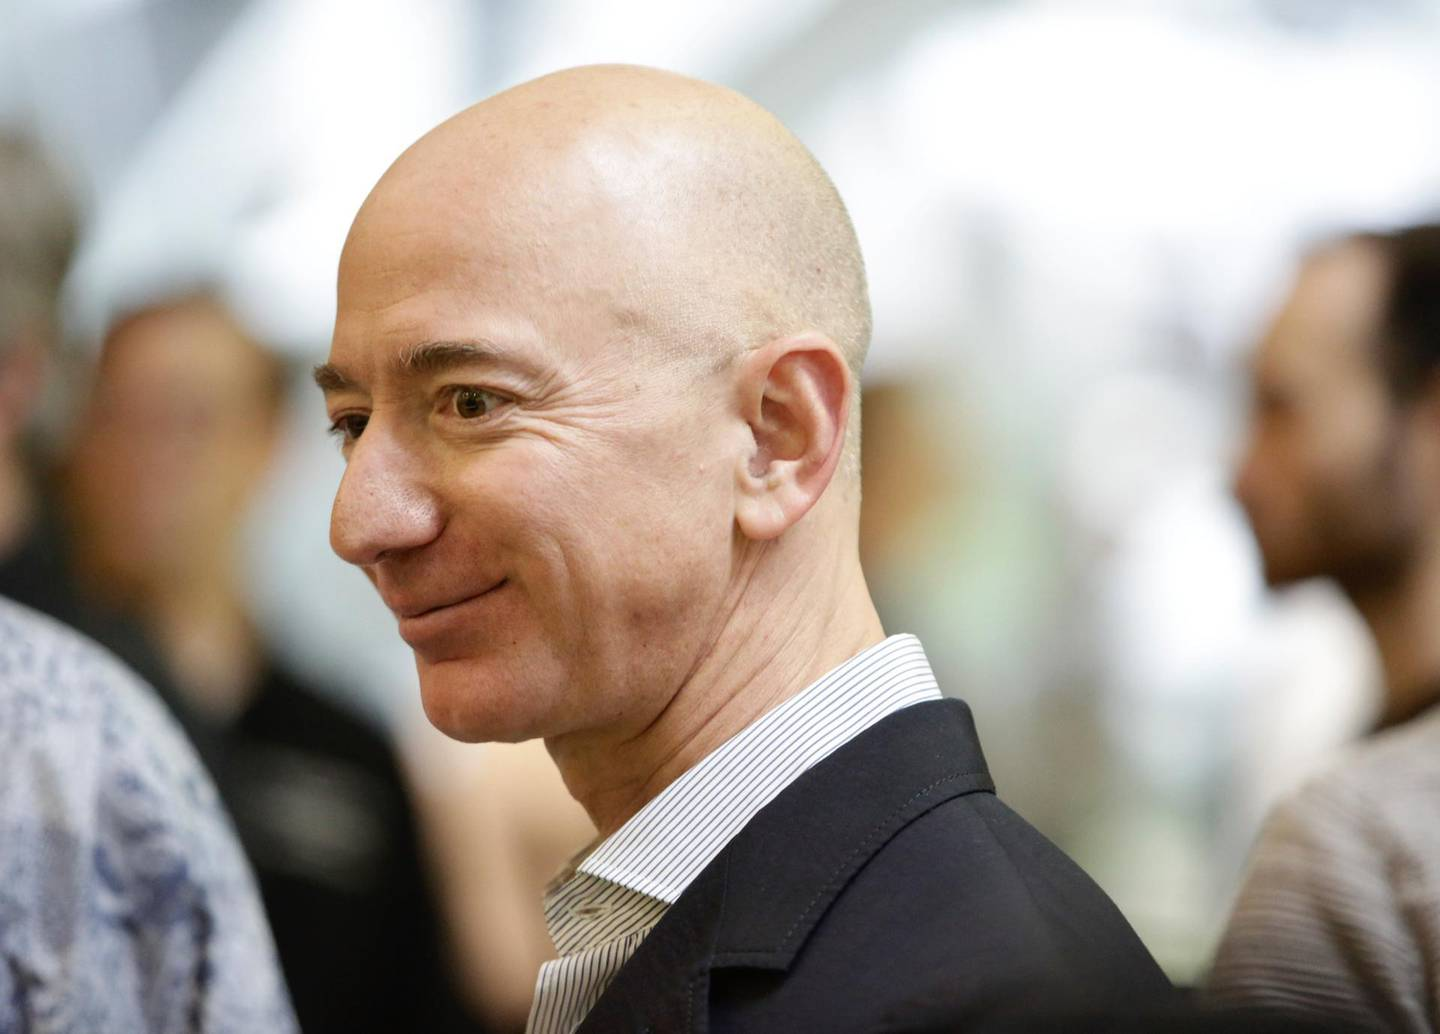 (FILES) In this file photo taken on January 29, 2018 Chief Executive Officer of Amazon, Jeff Bezos, tours the facility at the grand opening of the Amazon Spheres, in Seattle, Washington. Jeff Bezos is officially the richest person on the planet thanks to the success of Amazon -- but his bold vision extends to space and even time itself.With Amazon's share price up nearly 60 percent during the past year, the personal wealth of the company's 54-year-old founder has doubled to more than $110 billion.  / AFP PHOTO / JASON REDMOND